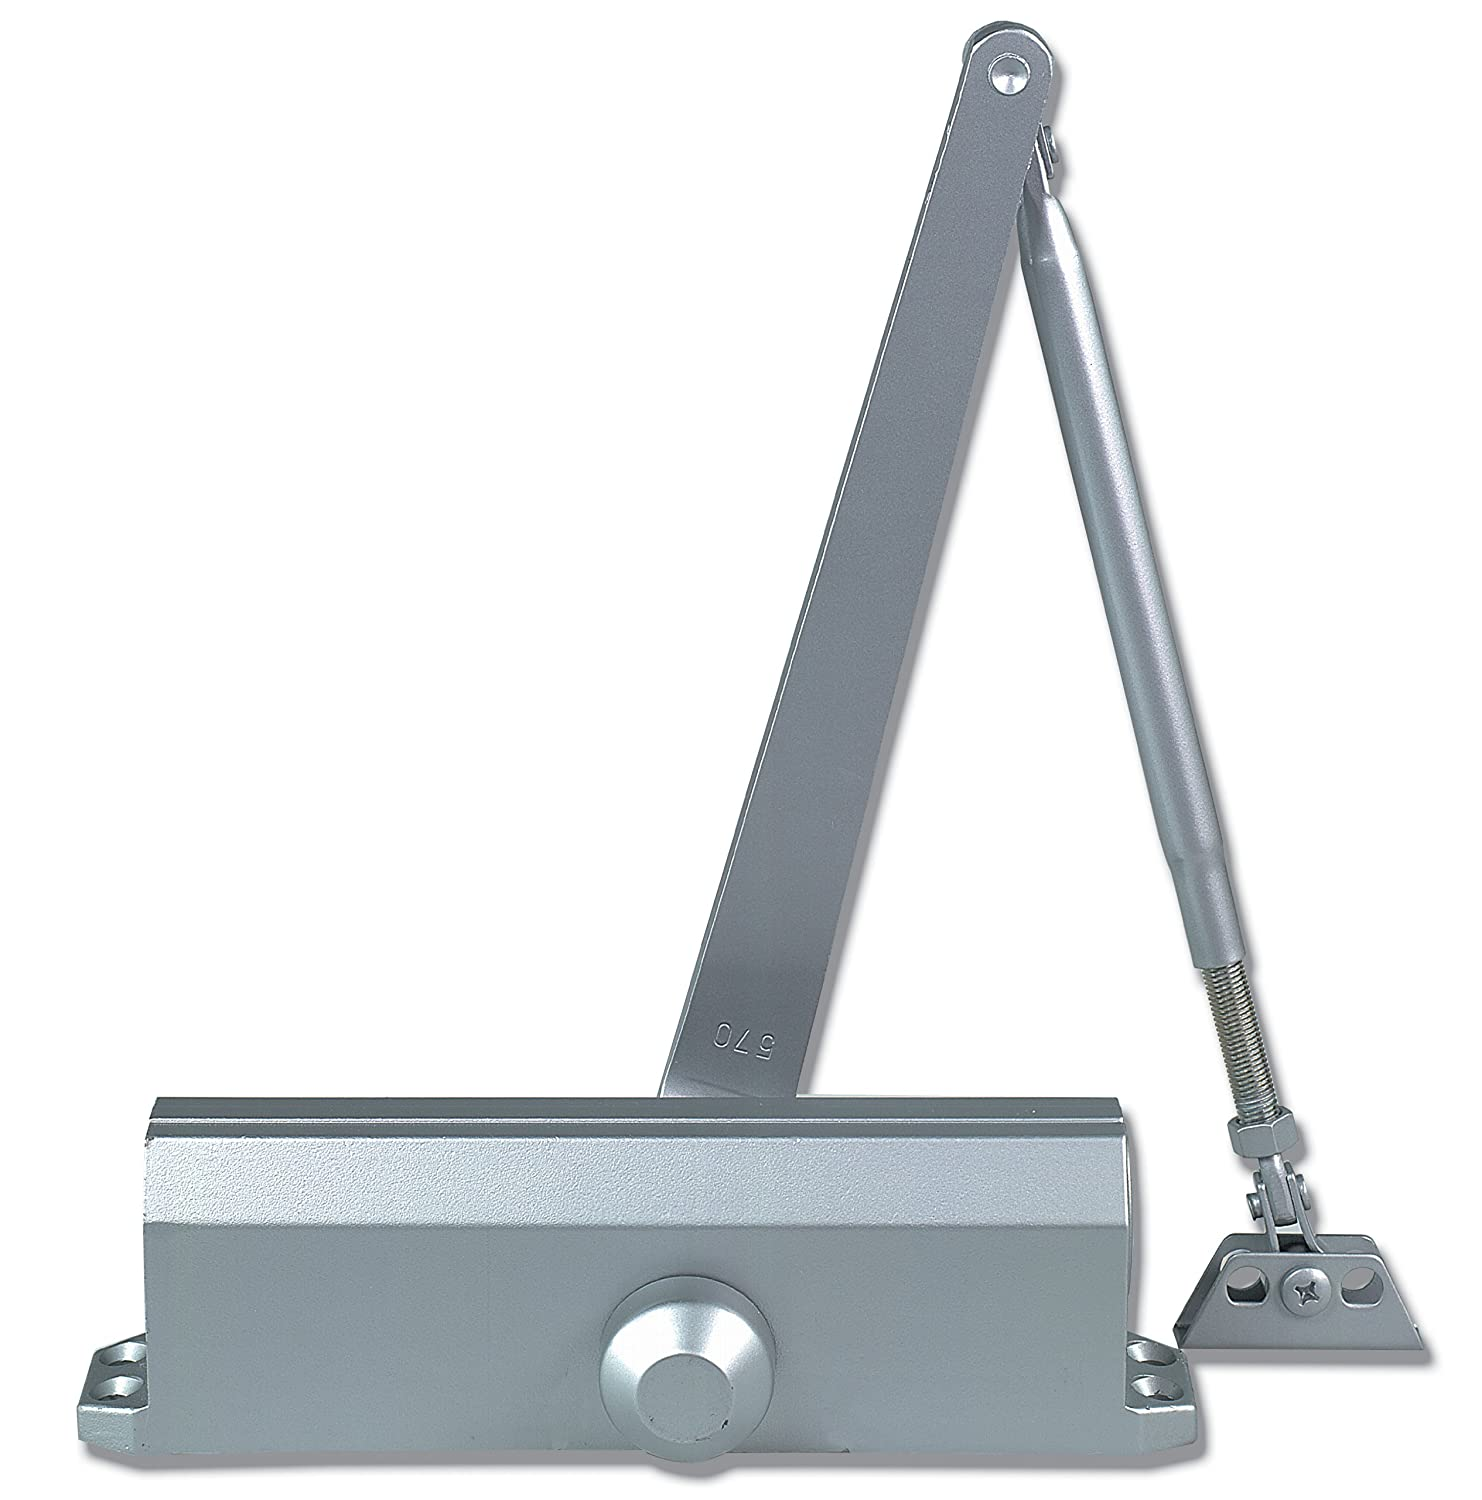 Size 5 TC205-BC-AL Global Door Controls Compact Commercial Door Closer in Aluminum with Adjustable Spring Tension and Backcheck